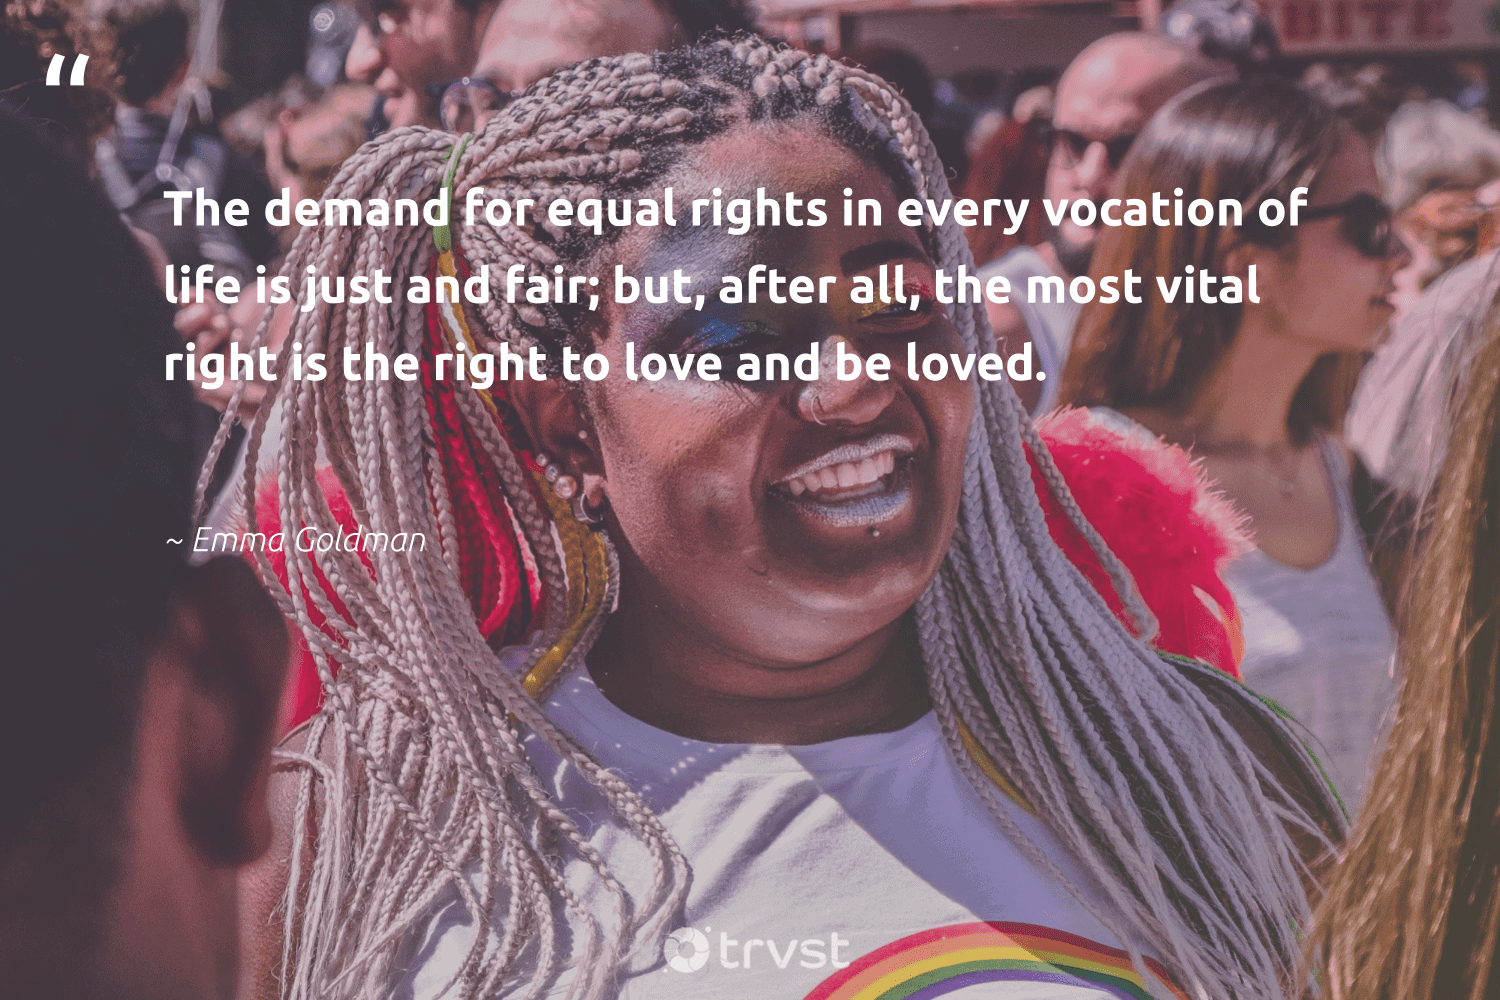 """""""The demand for equal rights in every vocation of life is just and fair; but, after all, the most vital right is the right to love and be loved.""""  - Emma Goldman #trvst #quotes #equality #love #equalrights #empowerment #socialchange #bethechange #collectiveaction #giveback #socialgood #socialimpact"""